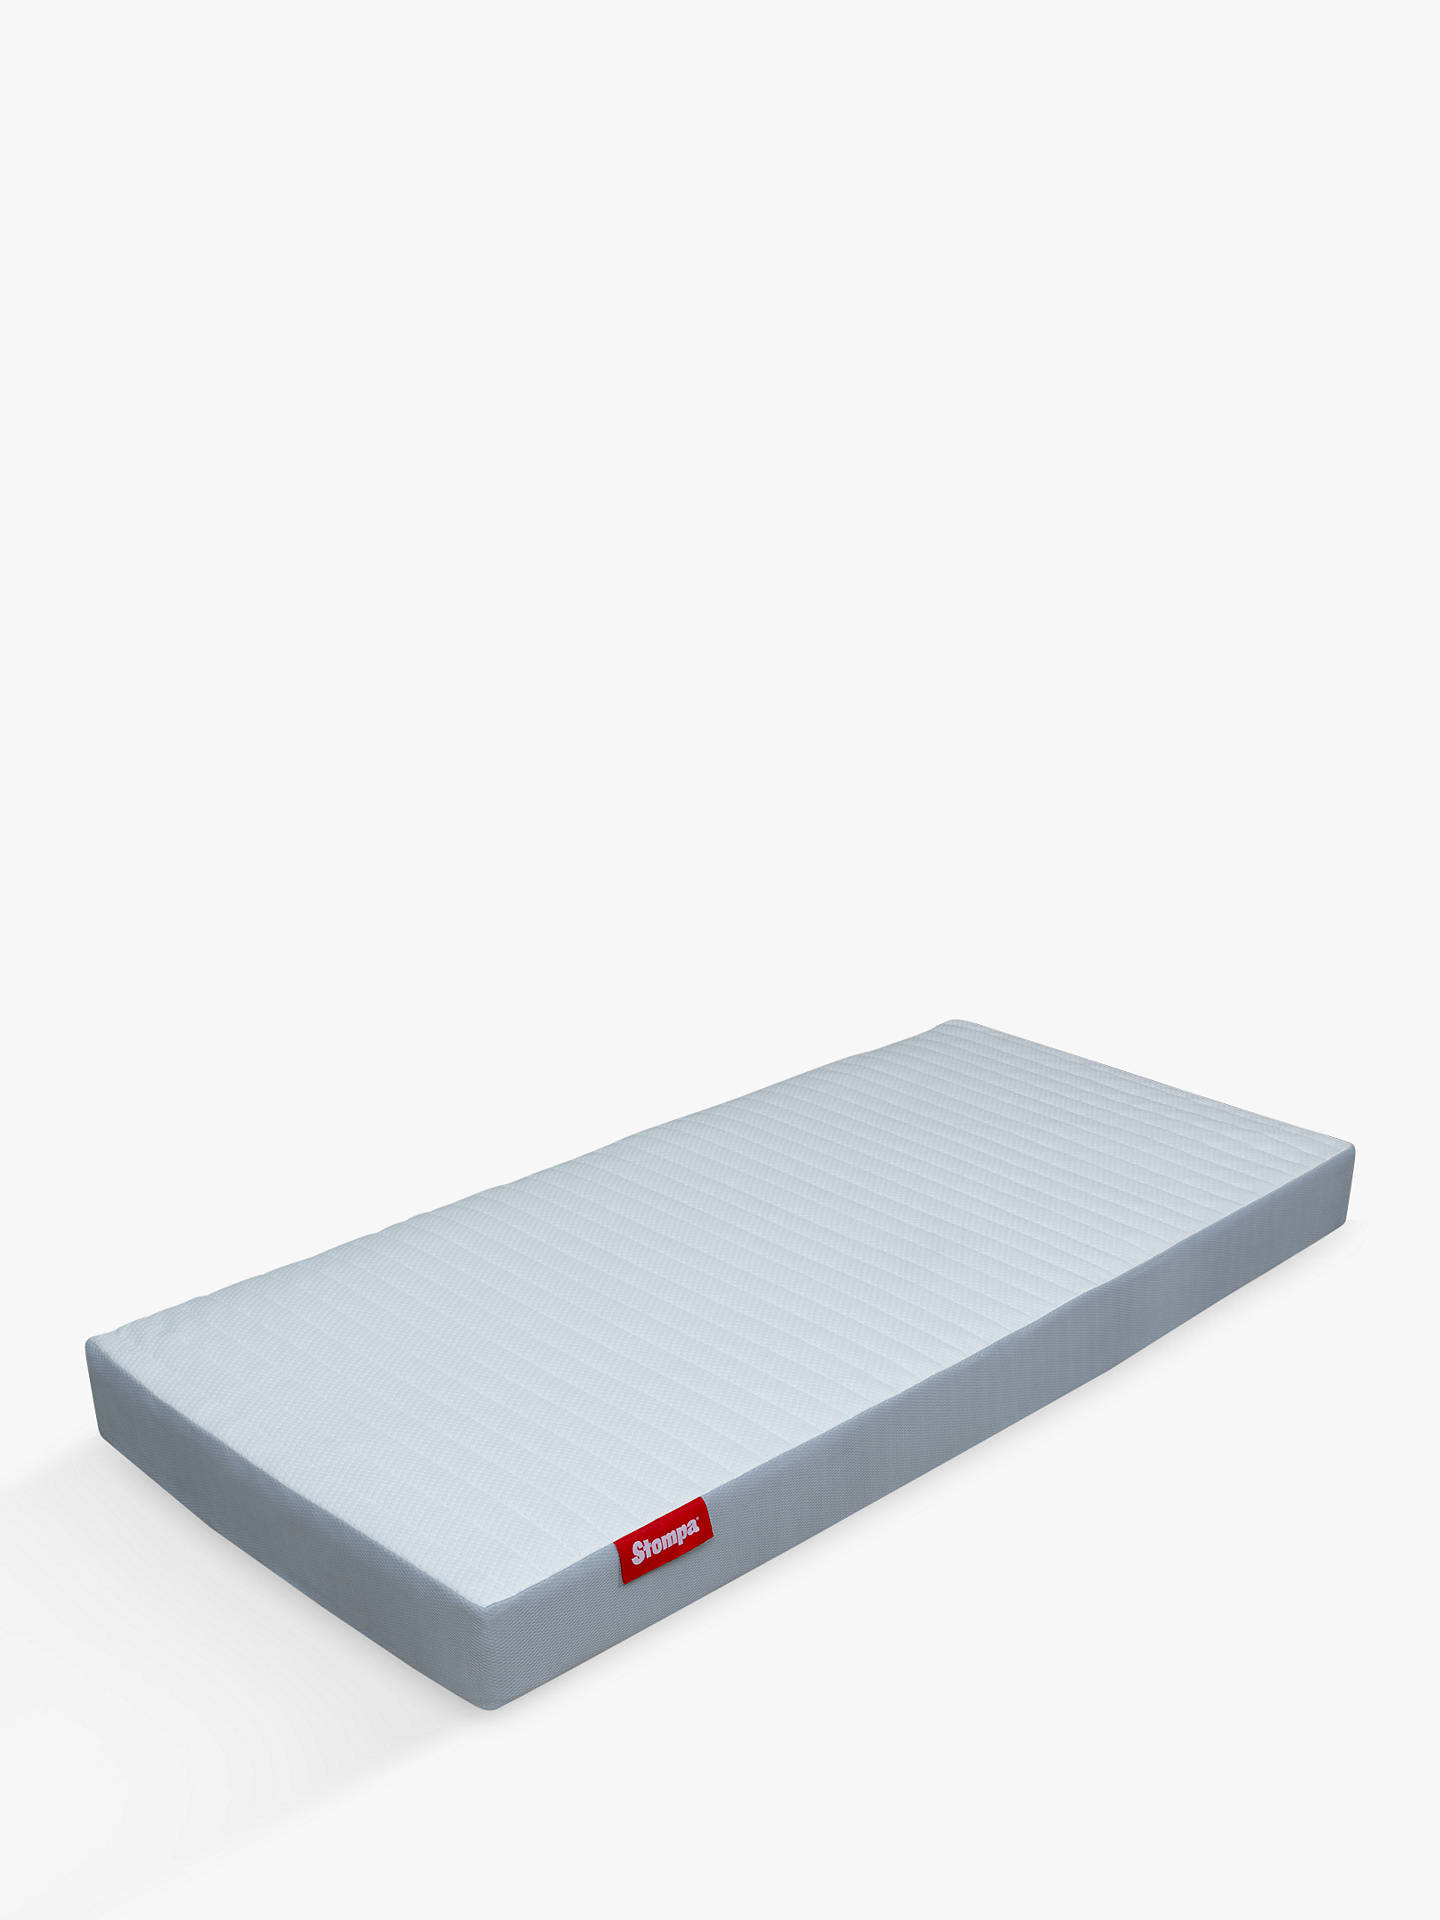 Buy Stompa S Flex Airflow 1000 Pocket Spring Mattress, Medium Tension, Extra Long Single Online at johnlewis.com